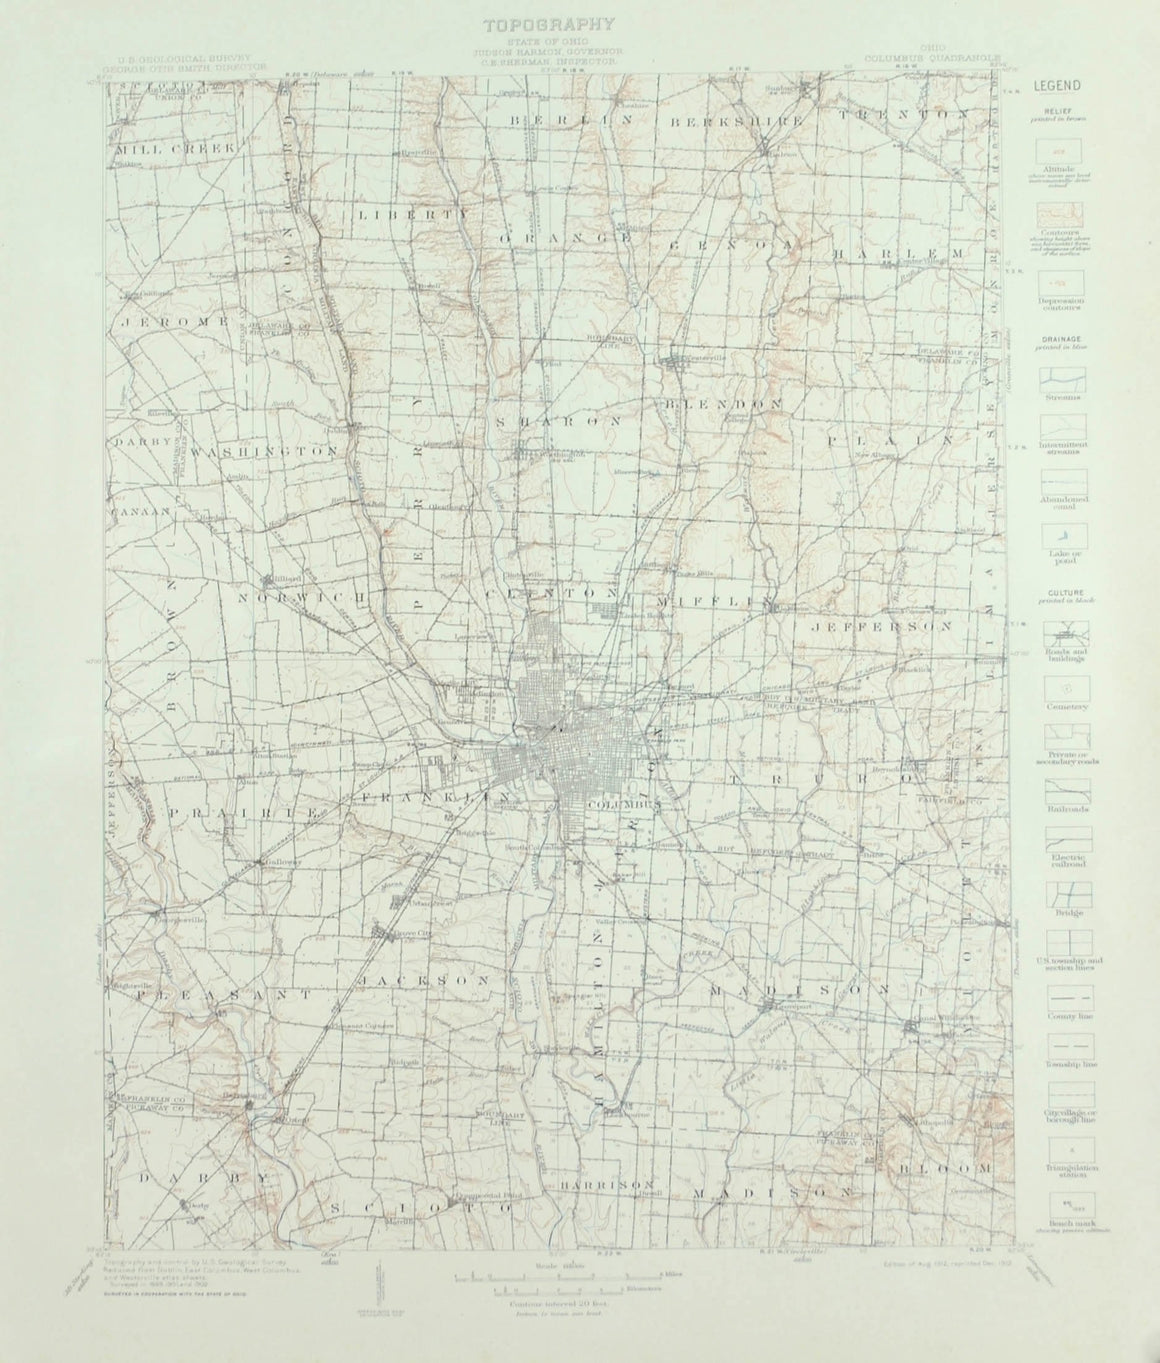 1915 Topography Ohio Columbus Quadrangle - G D Hubbard